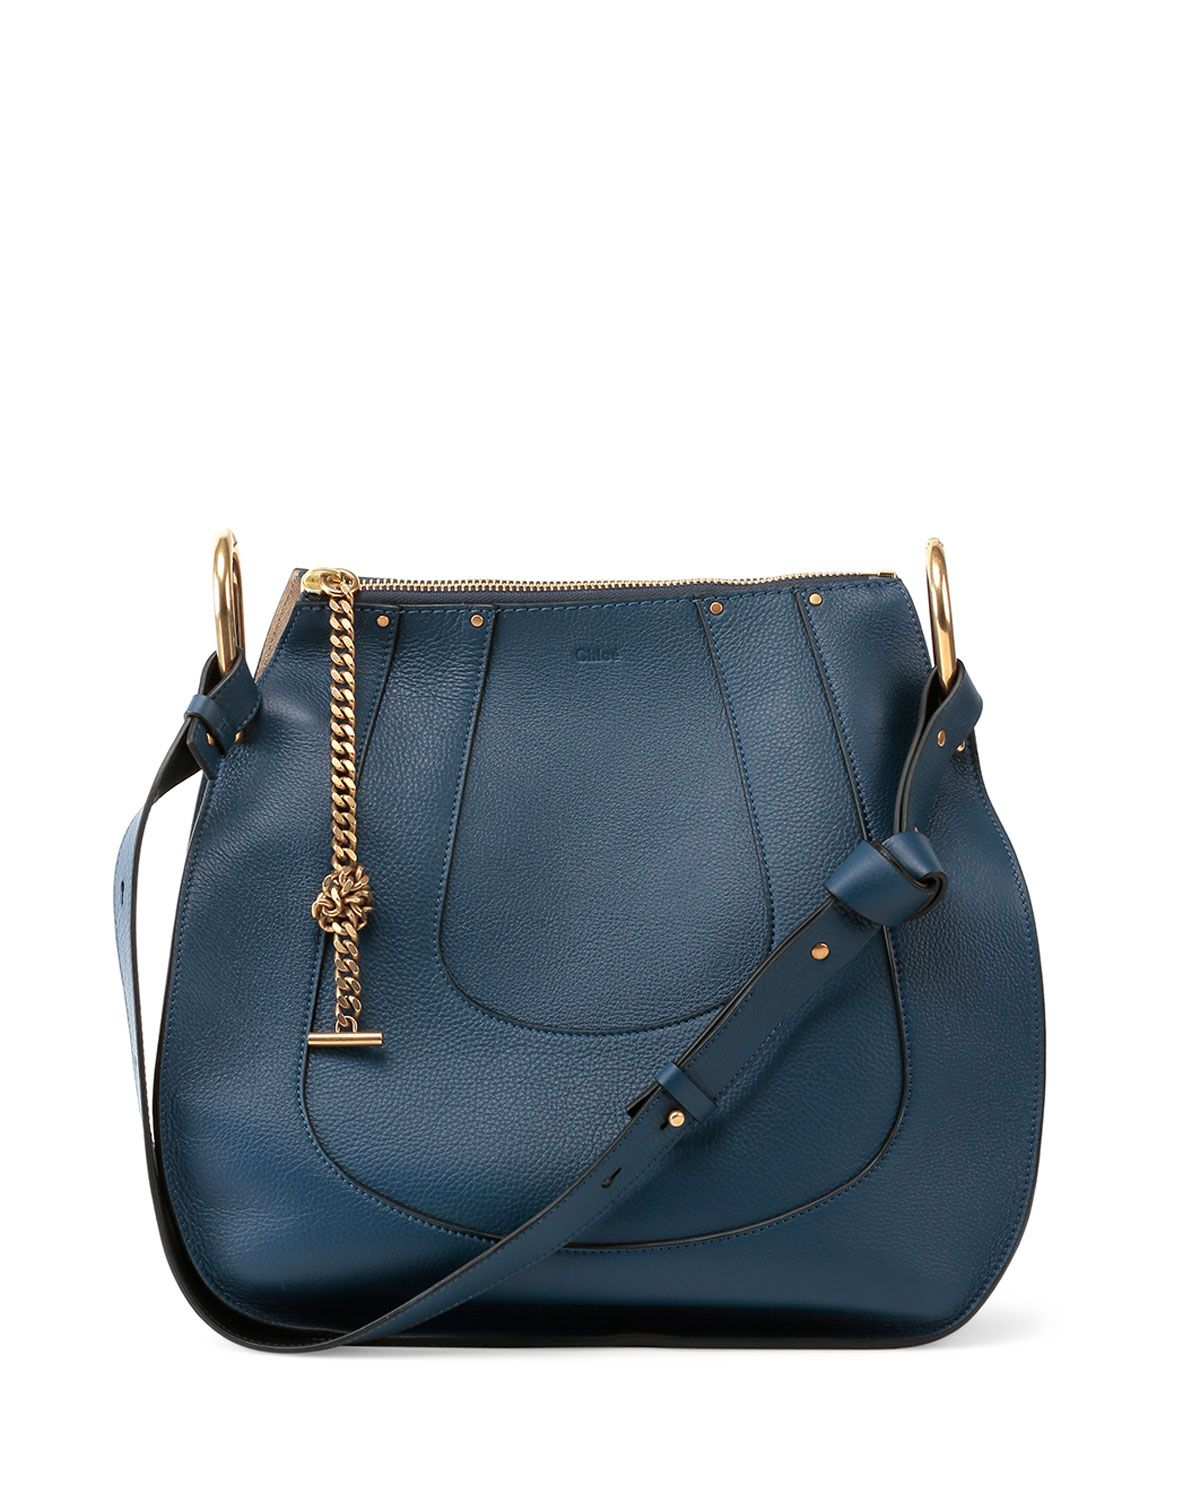 8a8c525e2 Chloe Hayley Small Hobo Bag, Navy - #justamoment, while I take this with me  to Barcelona, Spain for a tour around the city and finding delectable  eateries!